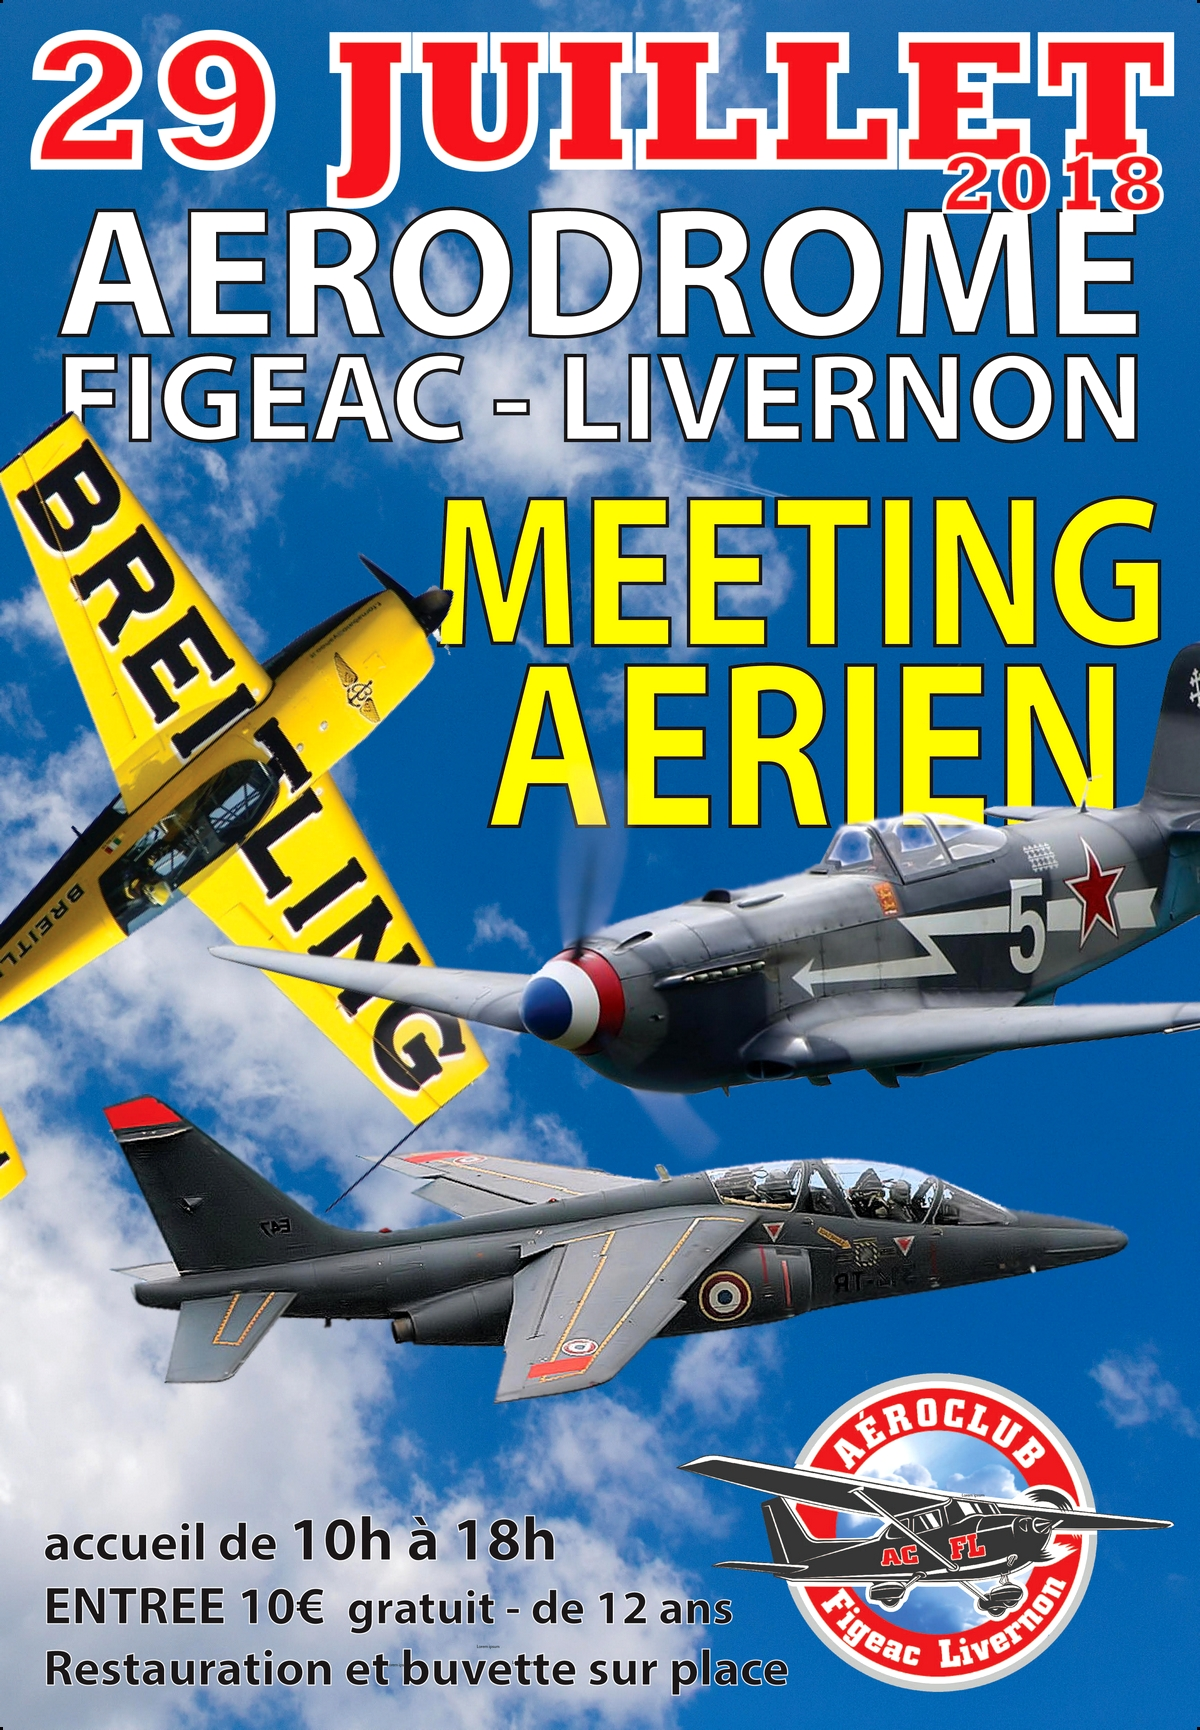 Meeting Aerien Figeac 2018 , Aerodrome Livernon , Alphajet solo Display ,meeting aerien 2018 , Spectacle aerien 2018